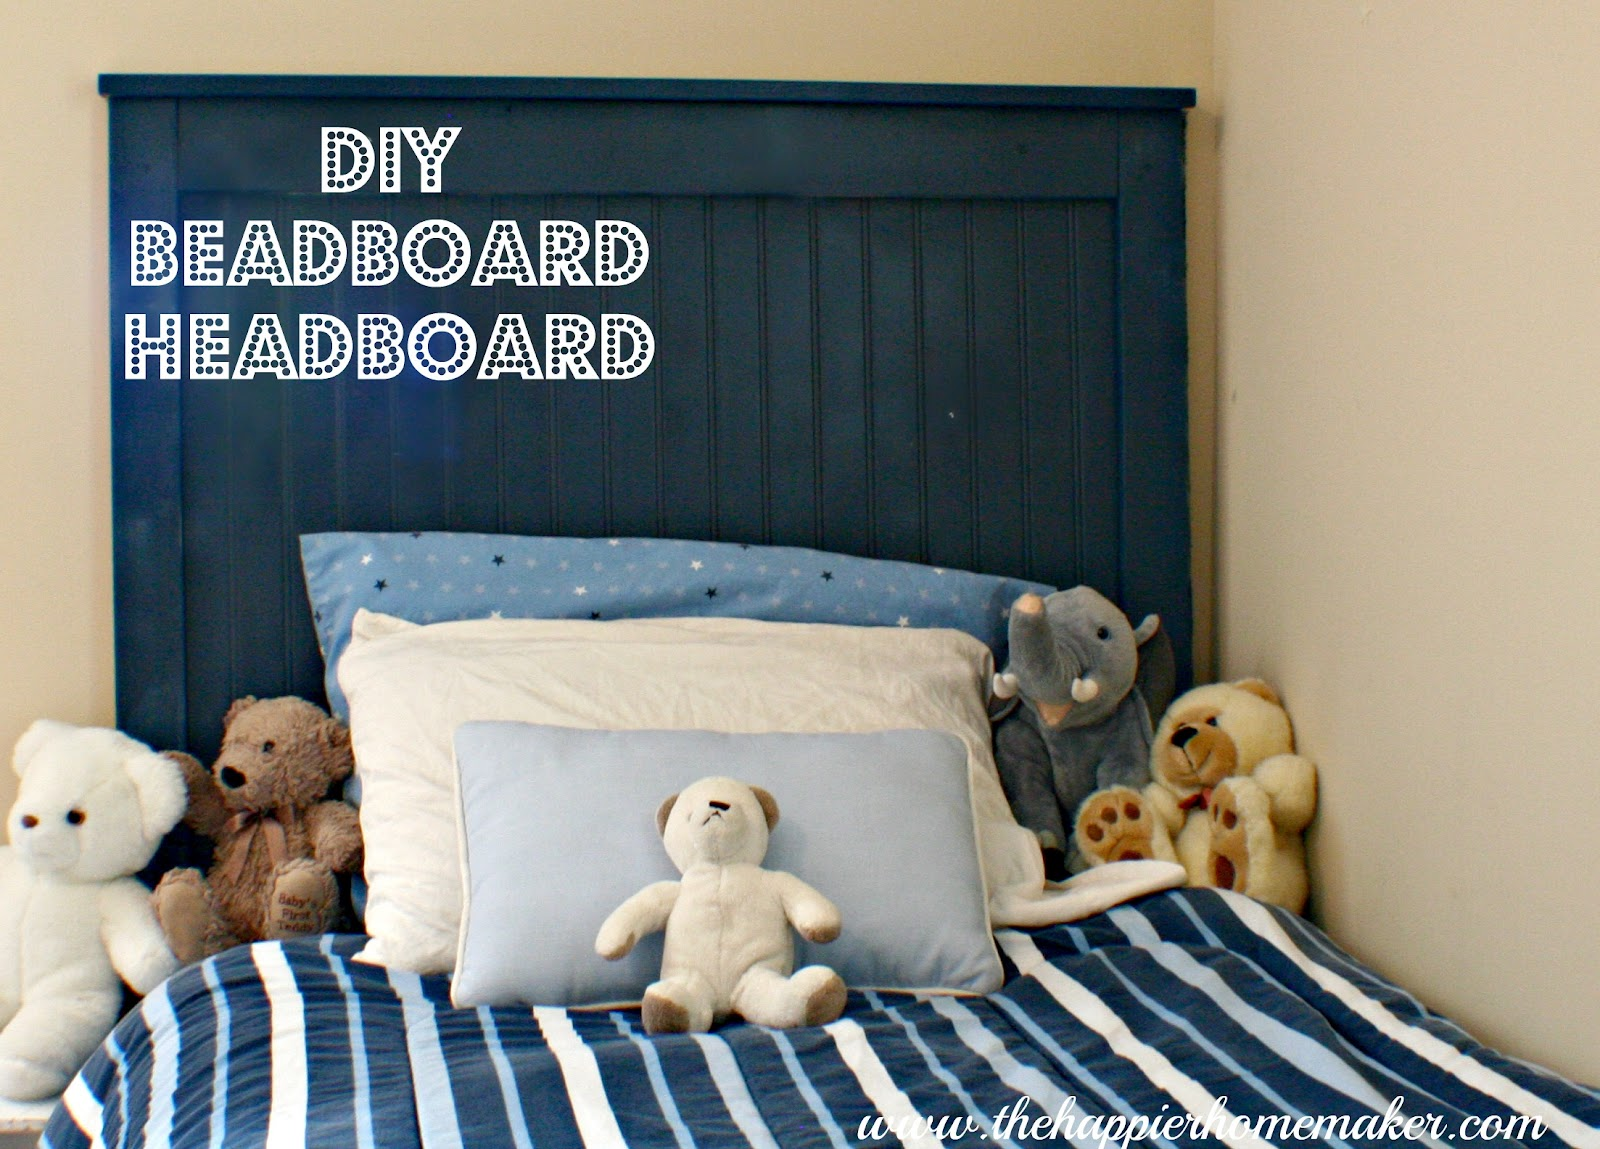 navy blue twin sized diy beadboard headboard with blue striped bedding and stuffed animals